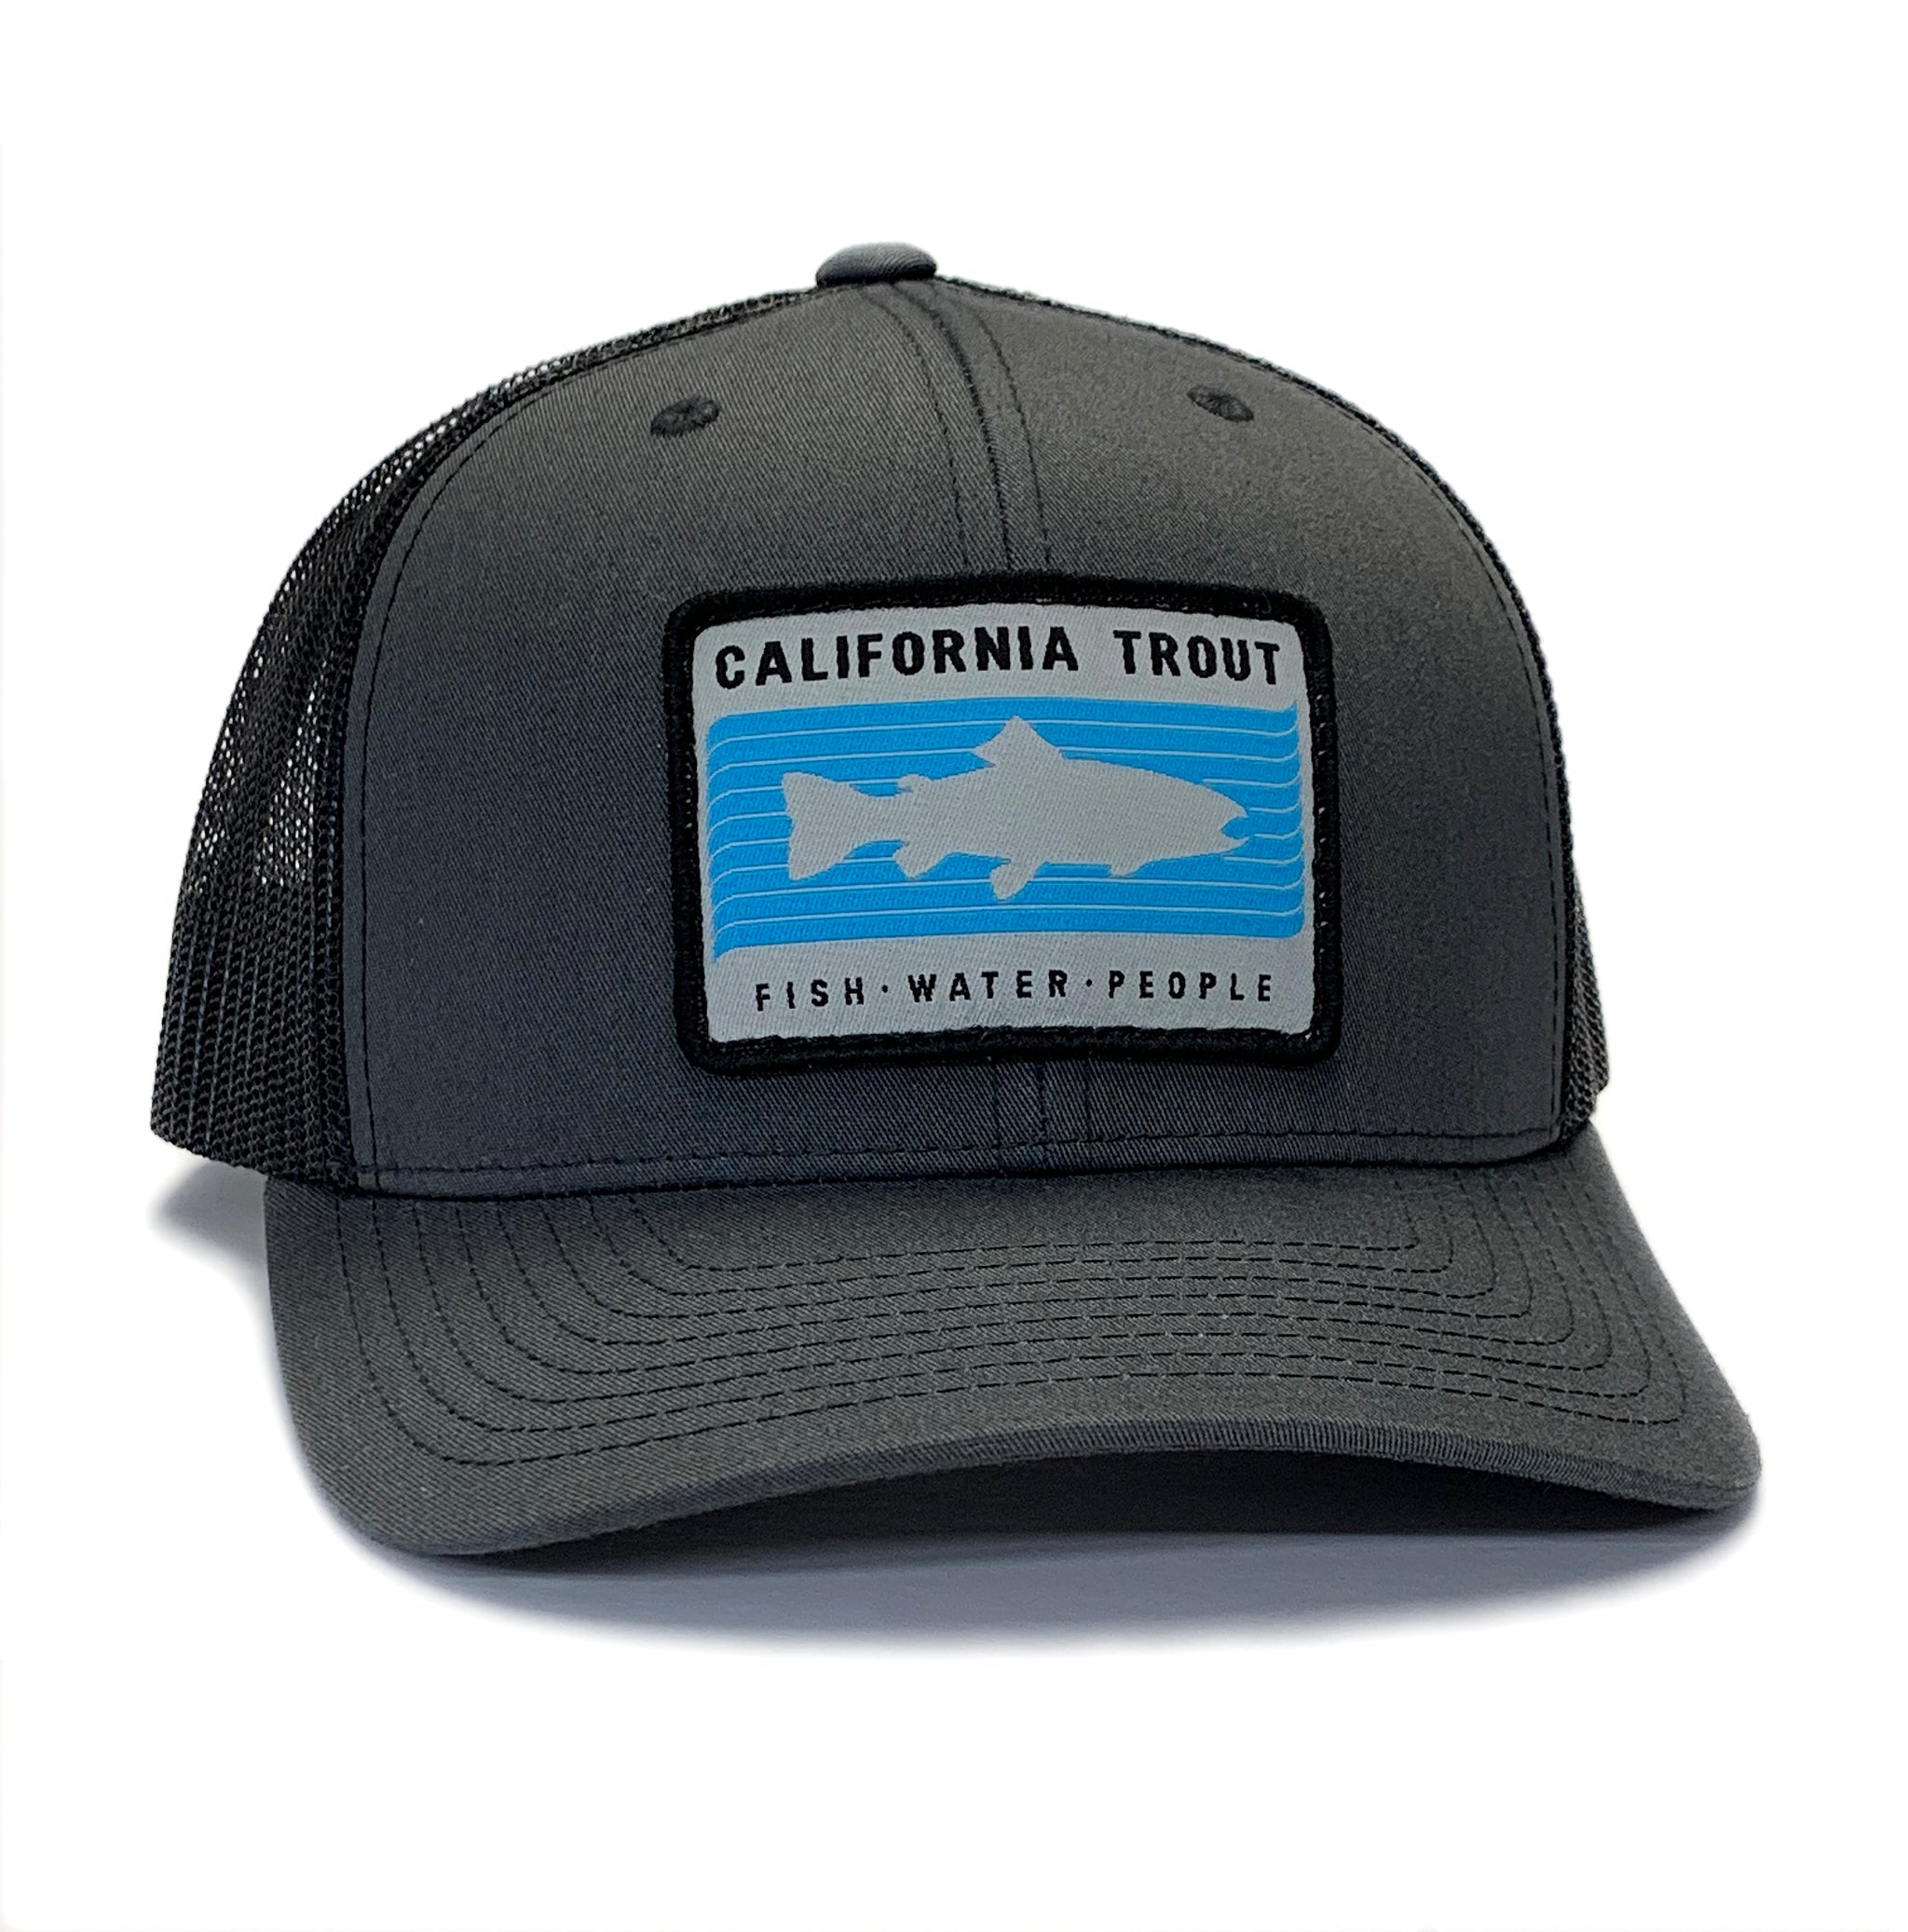 Cal Trout Trucker Hat (Unisex)